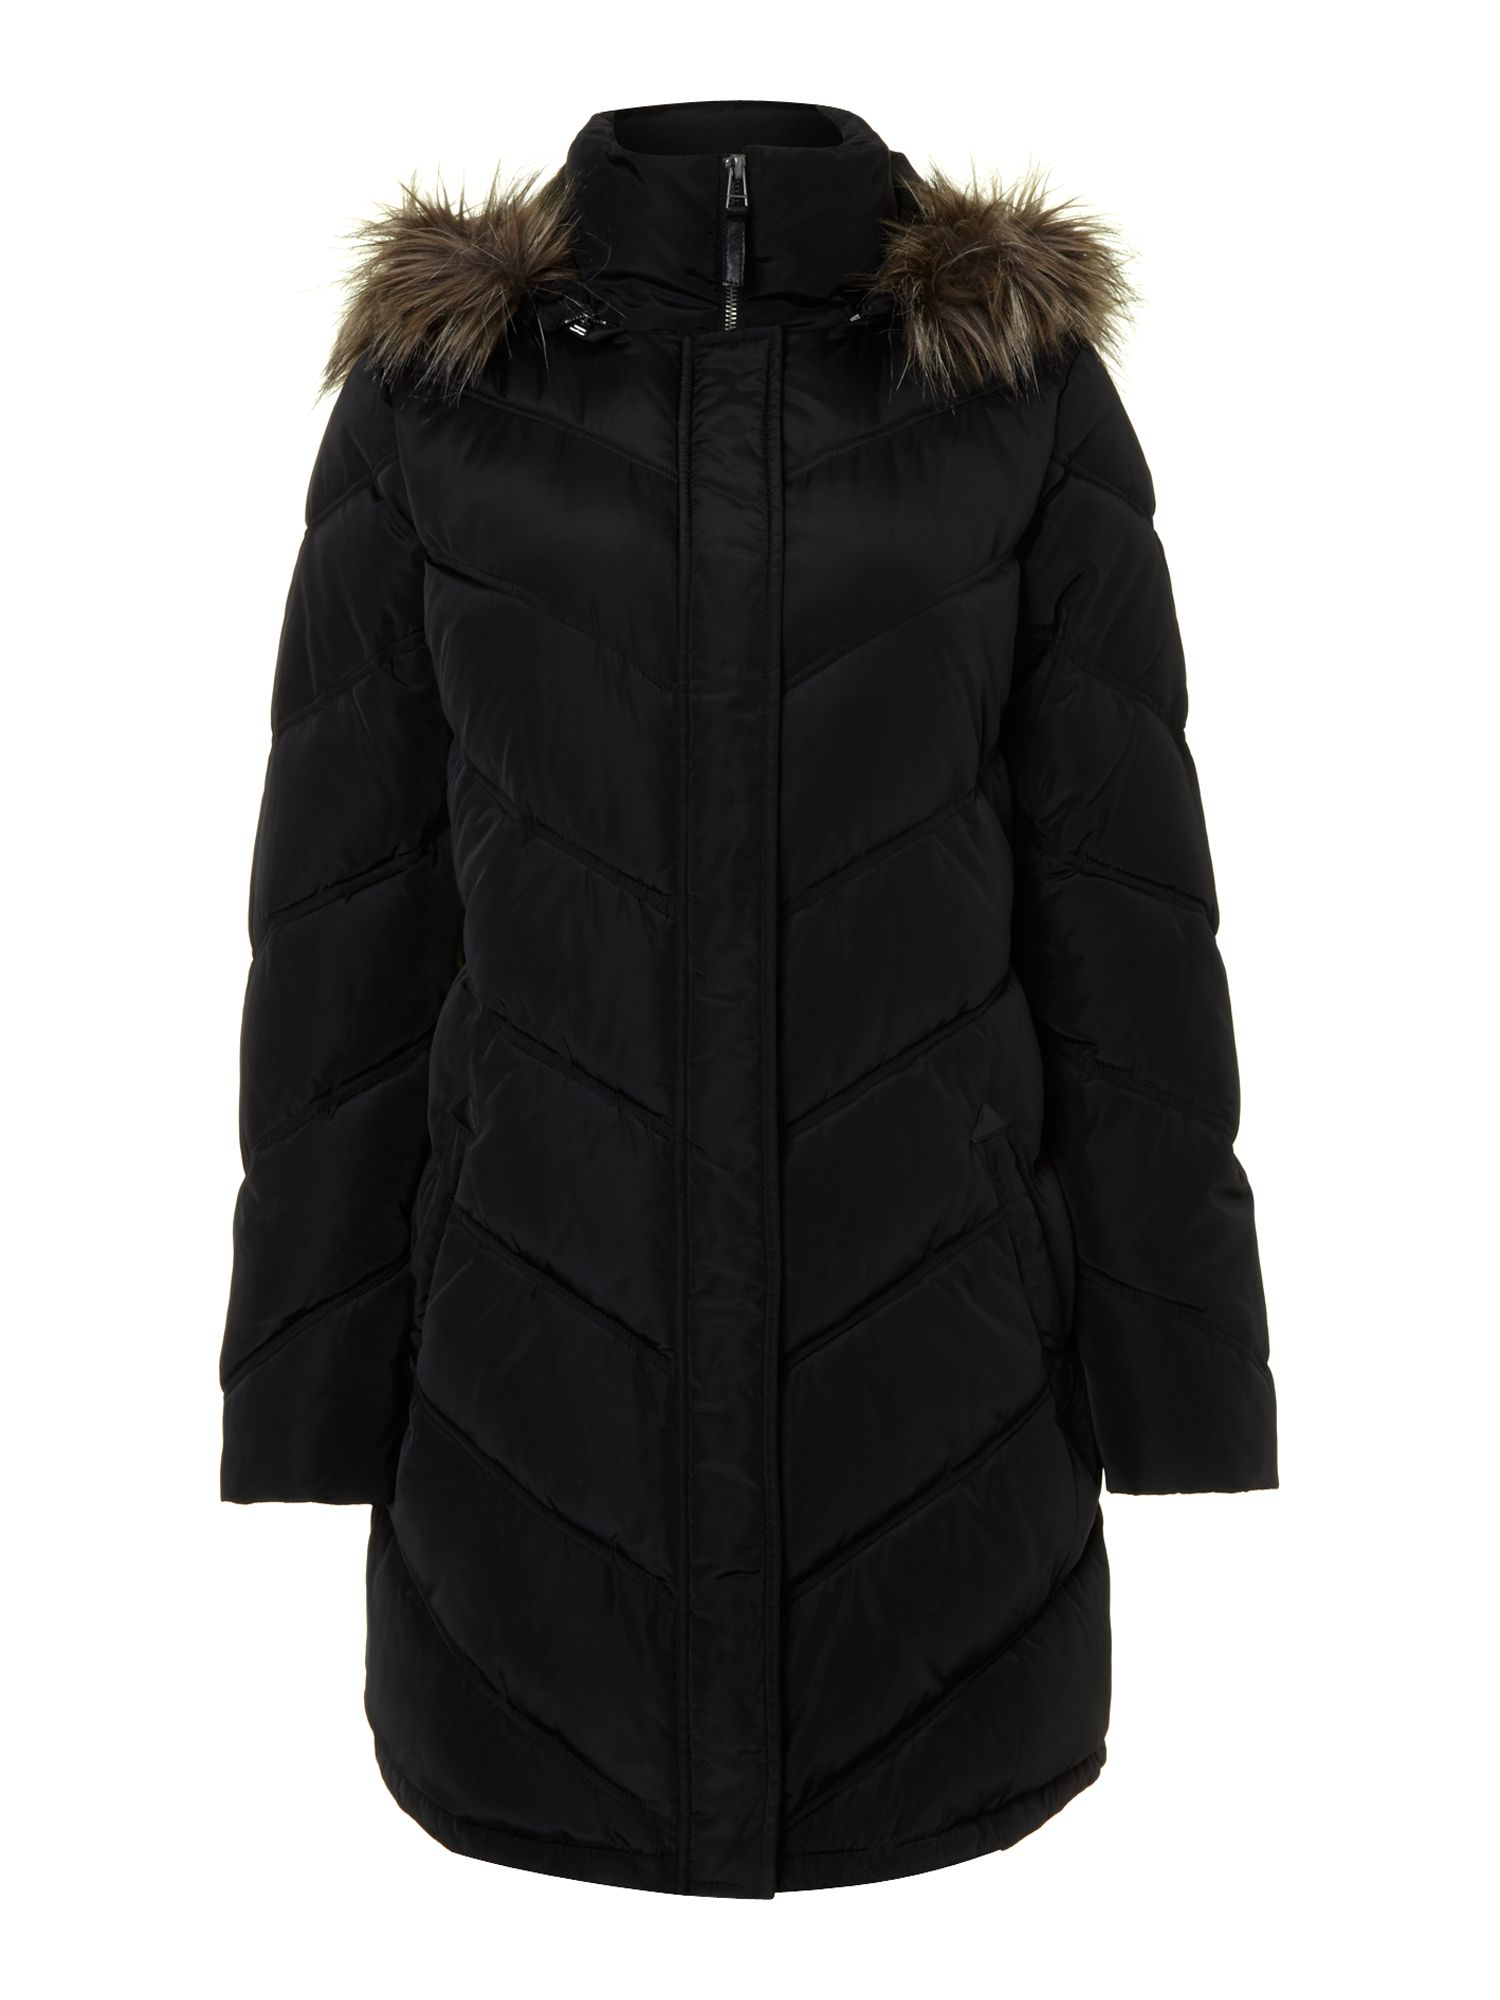 Ladies long puffer coat with detachable fur hood